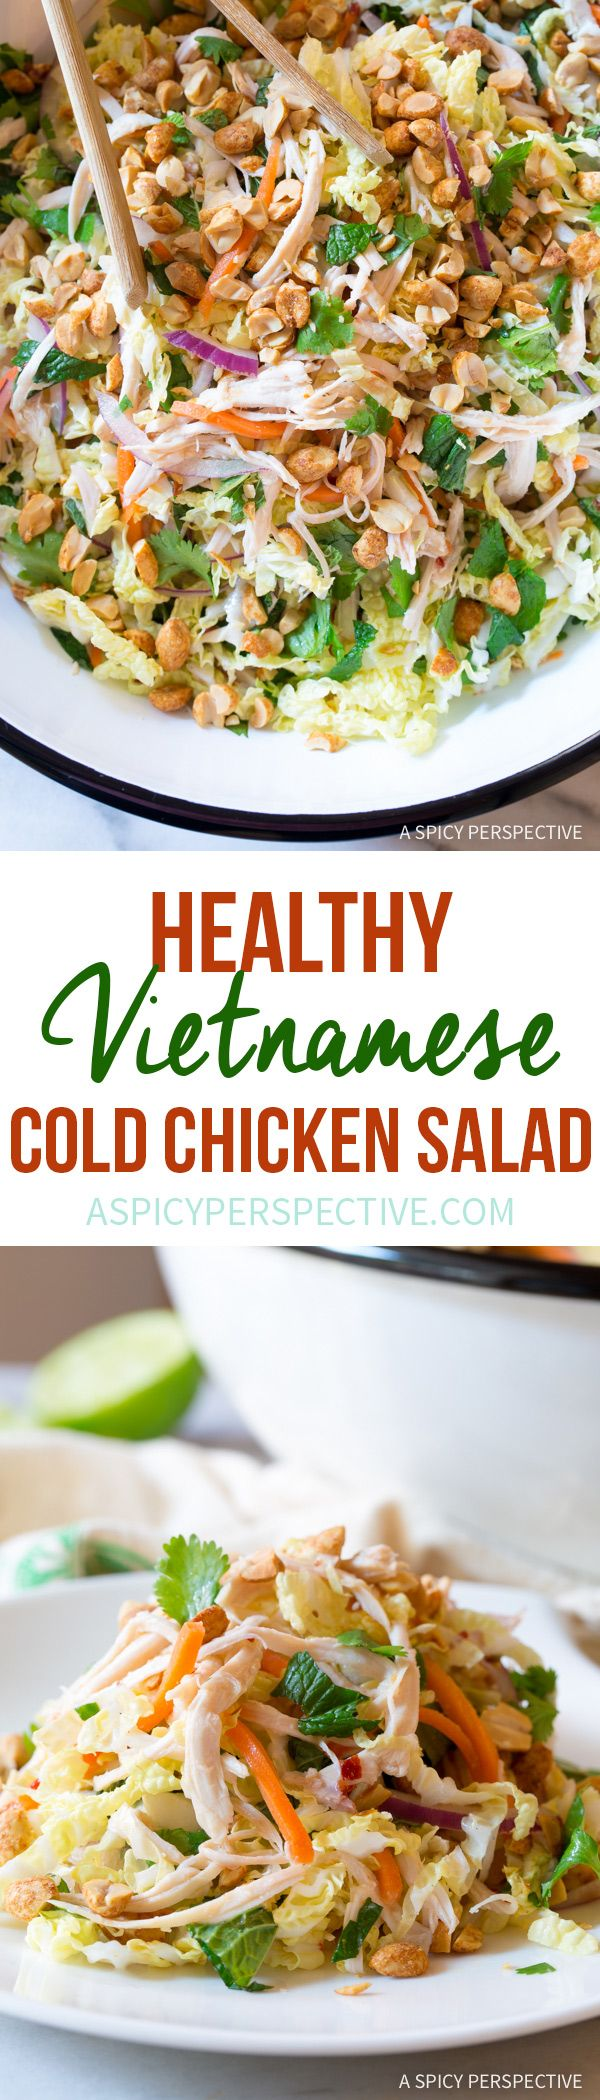 Vibrant Vietnamese Cold Chicken Salad (Goi Ga) #healthy #lowcarb #paleo via @spicyperspectiv